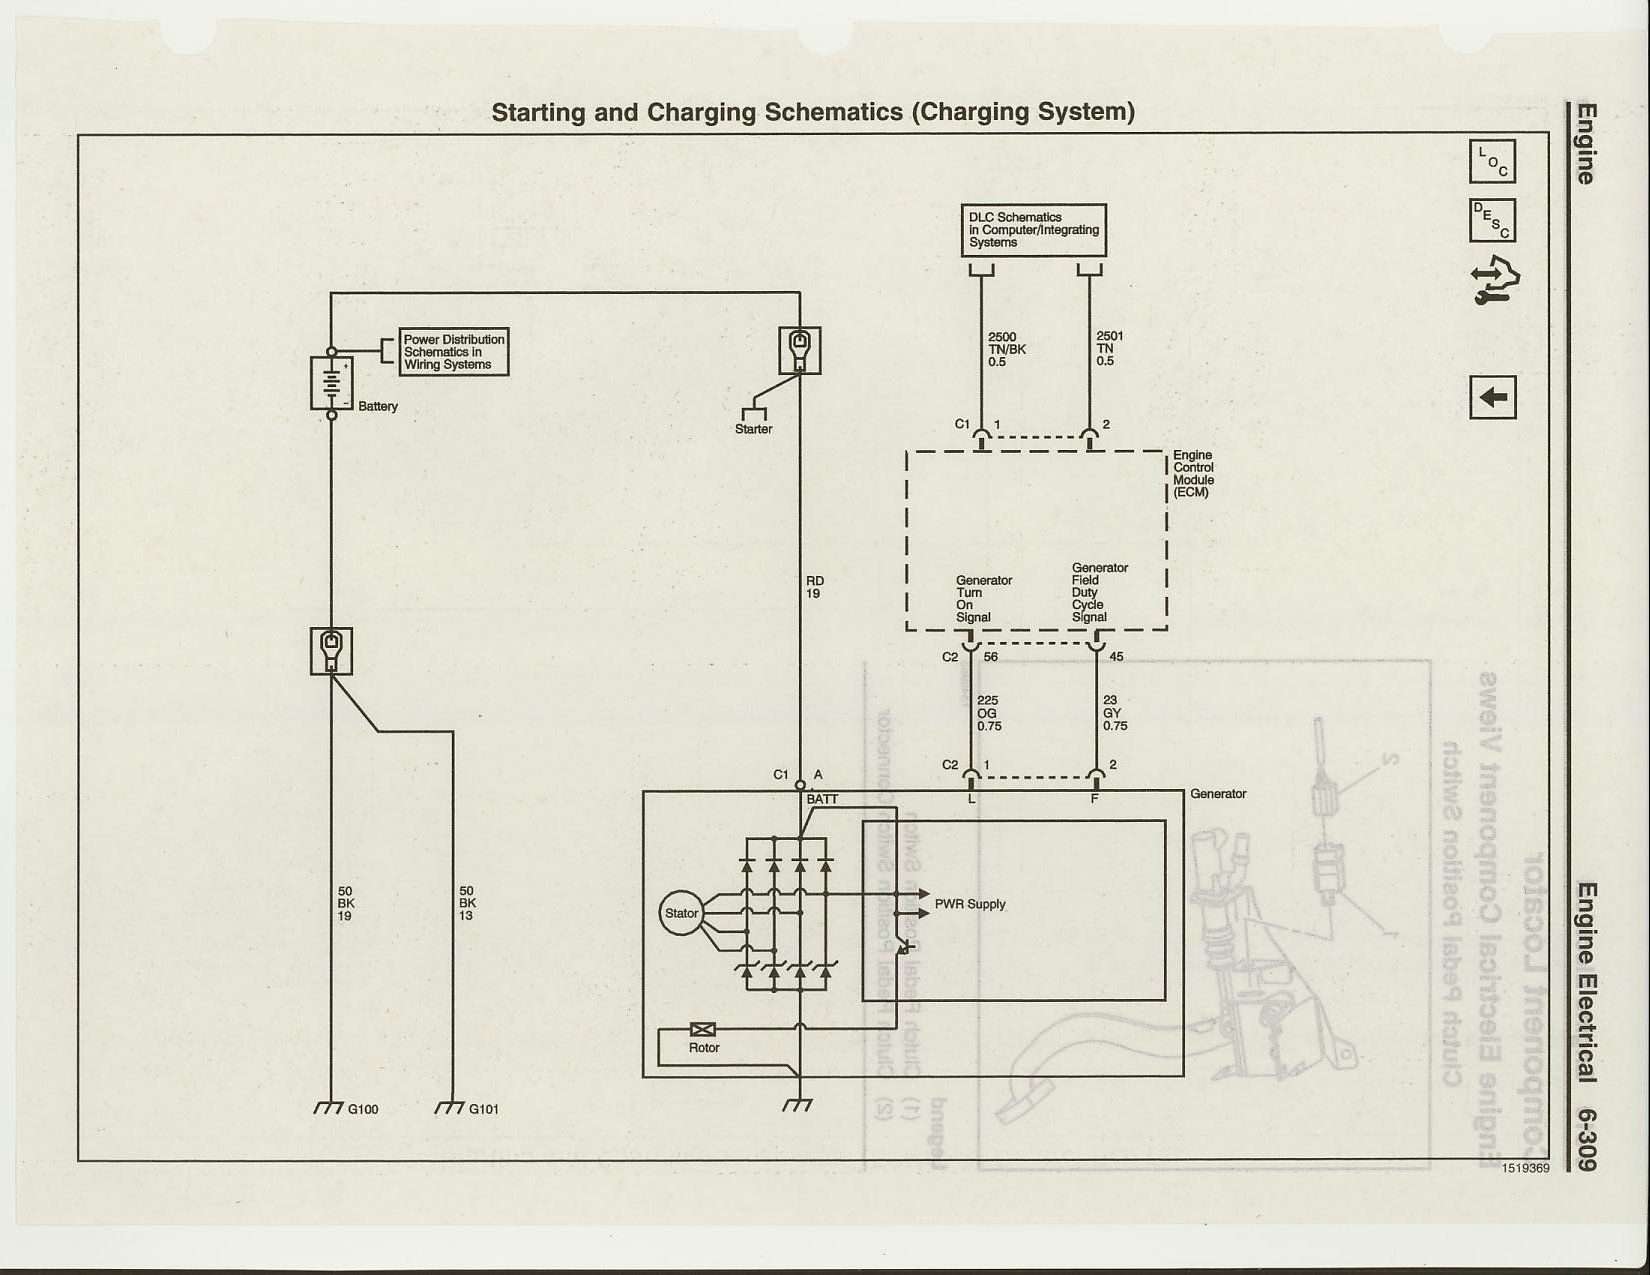 ls2 engine wiring diagram ls2 image wiring diagram ls2 engine wiring diagram on ls2 engine wiring diagram